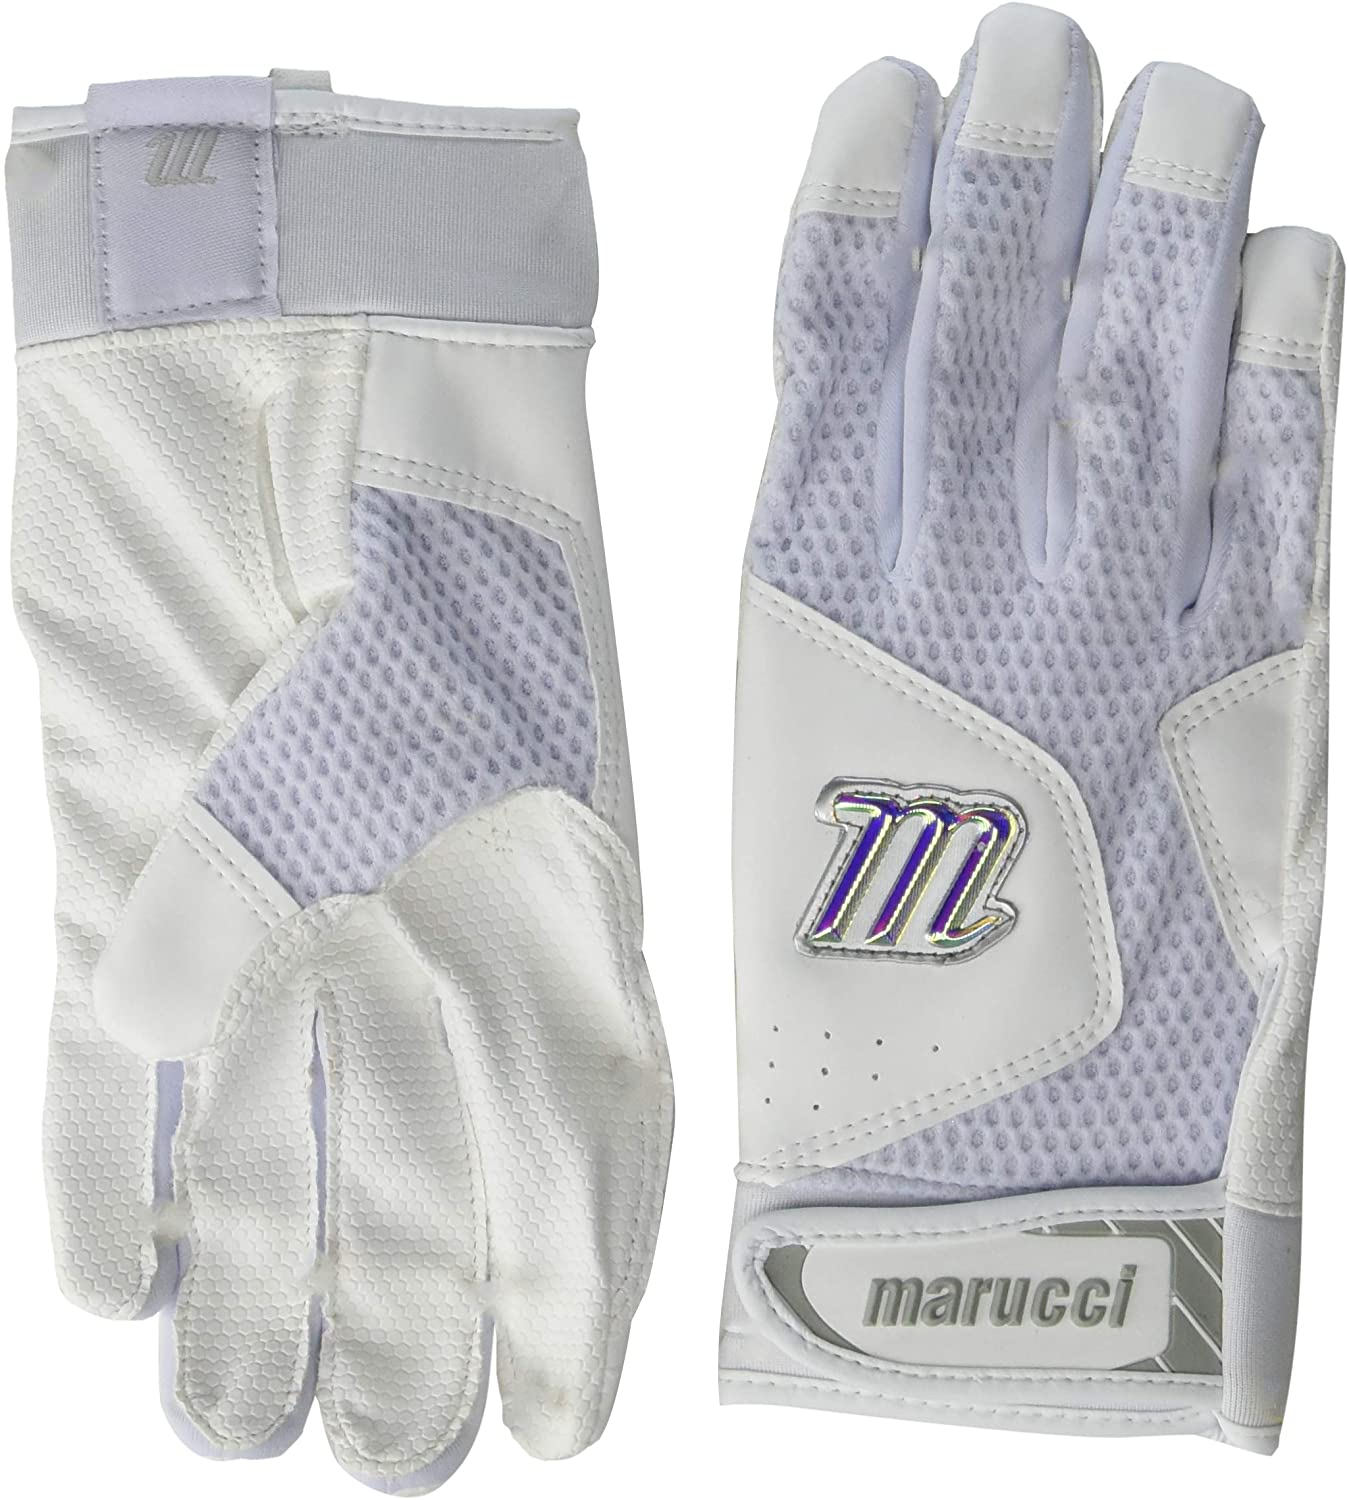 marucci-mbgqst2y-ww-yl-youth-quest-2-batting-gloves-youth-large MBGQSTY-WW-YL Marucci  Consistency and craftsmanship Commitment to quality and understanding of players Designed